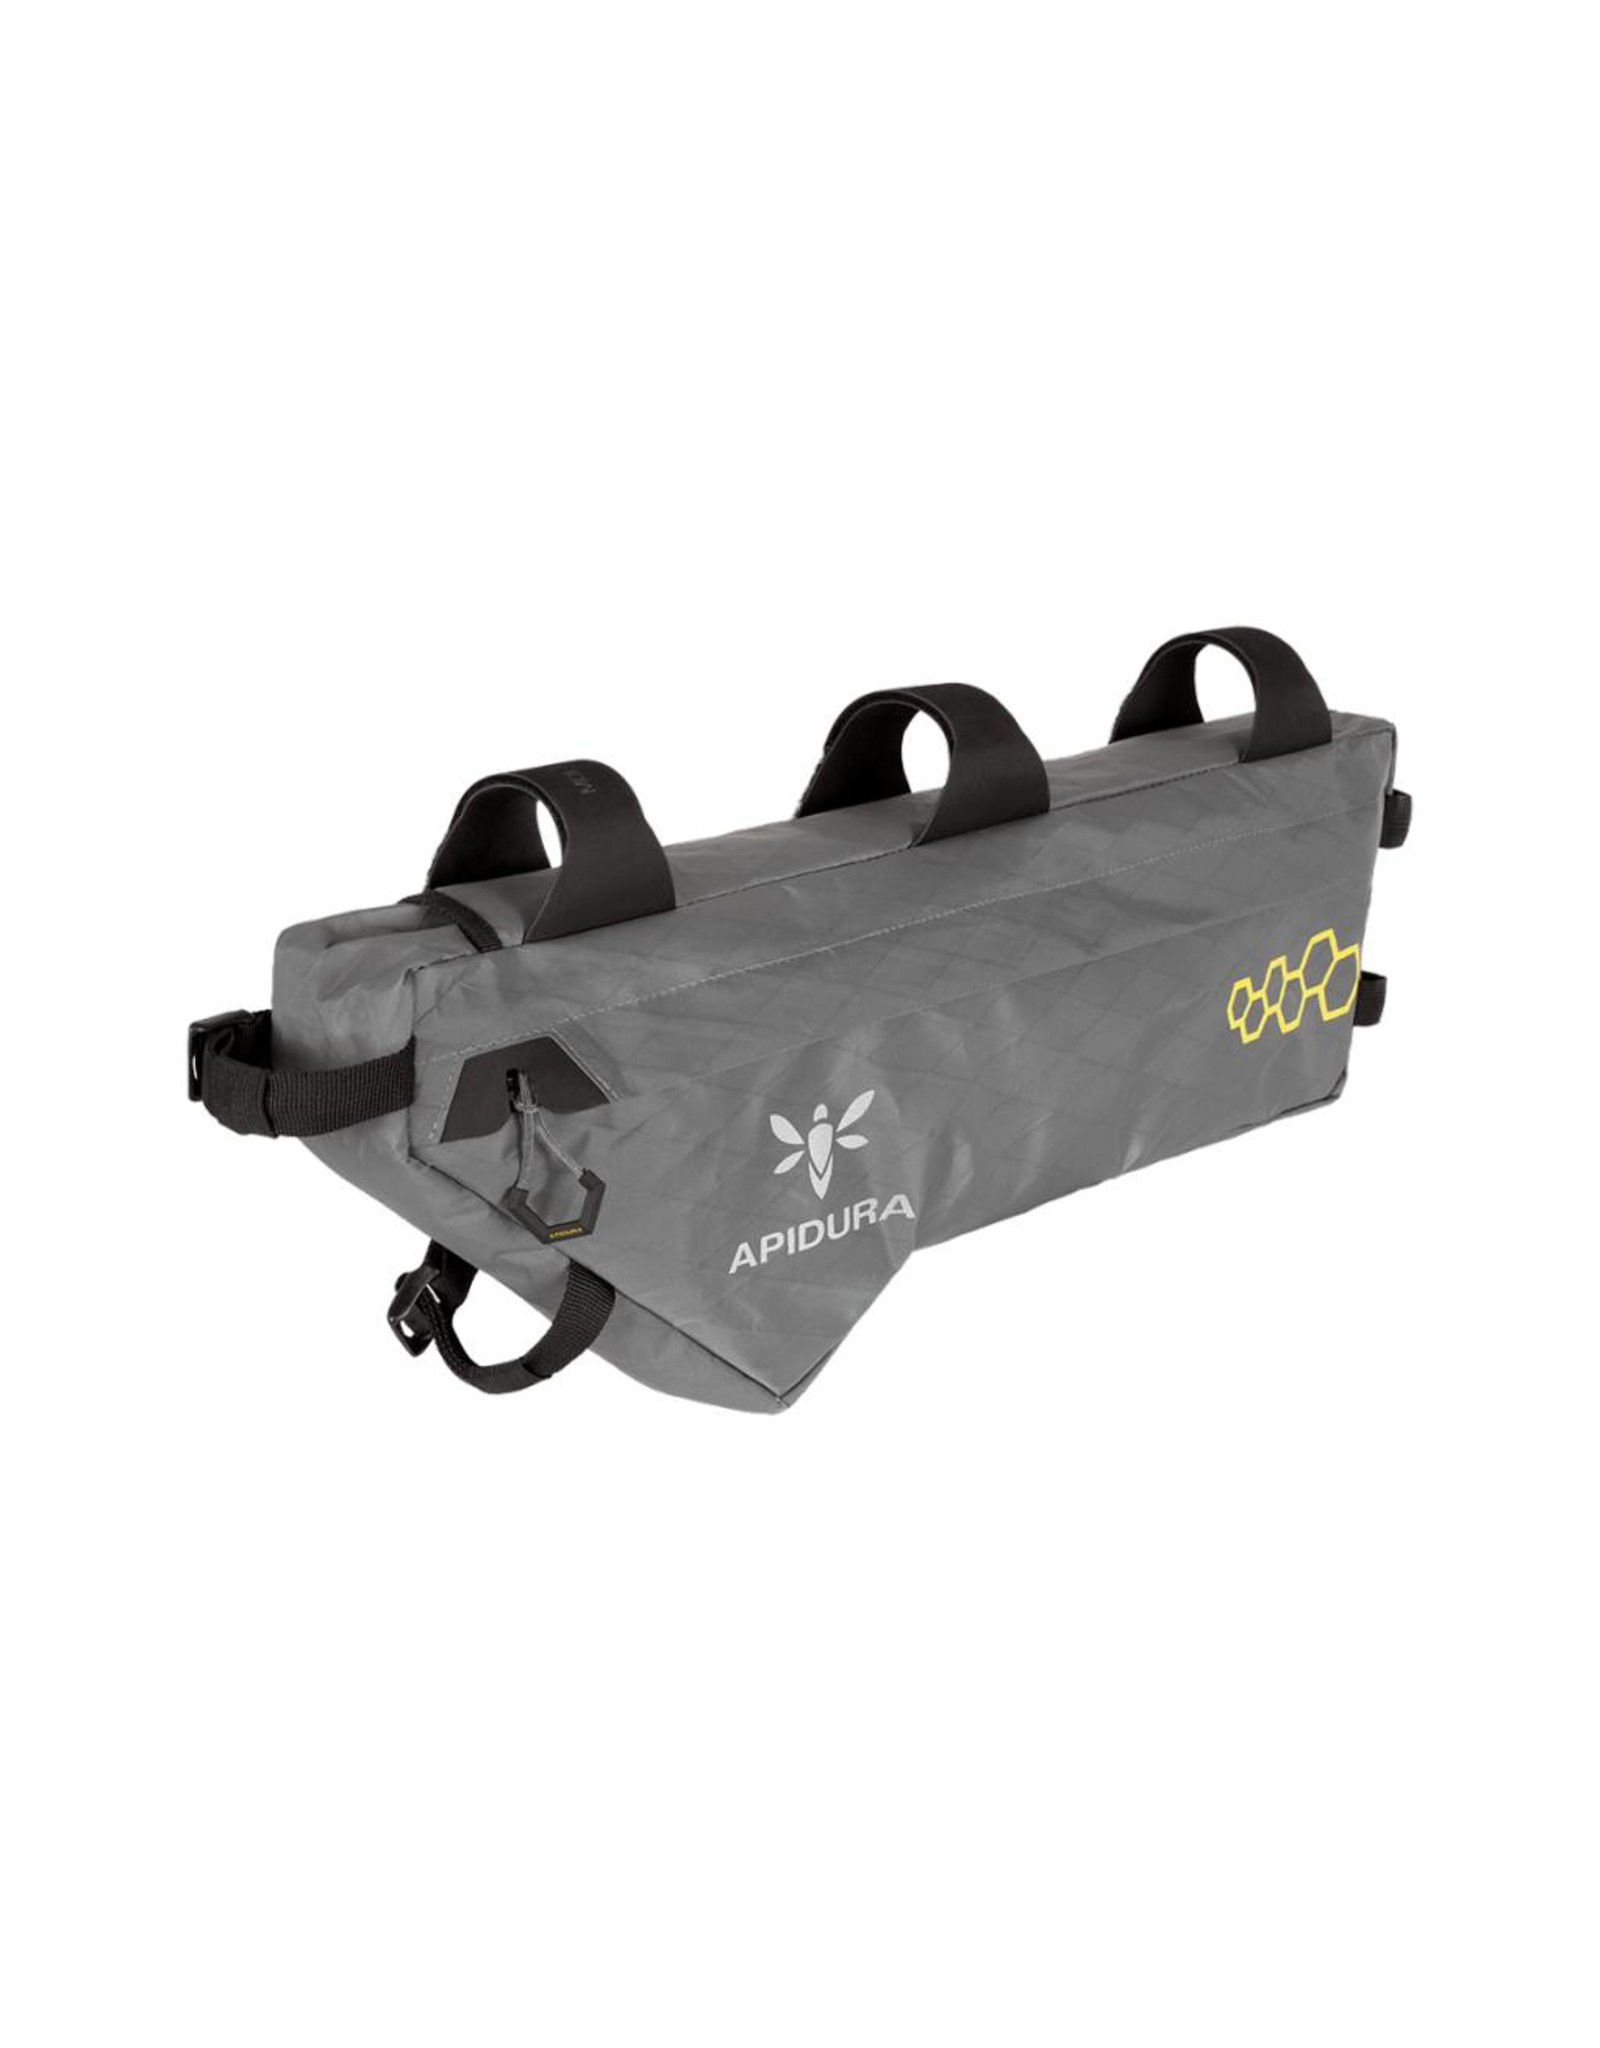 Apidura Apidura Mountain Frame Pack, Large size 5.3 litre (touring/bikepacking/randonneur/commuter bag)